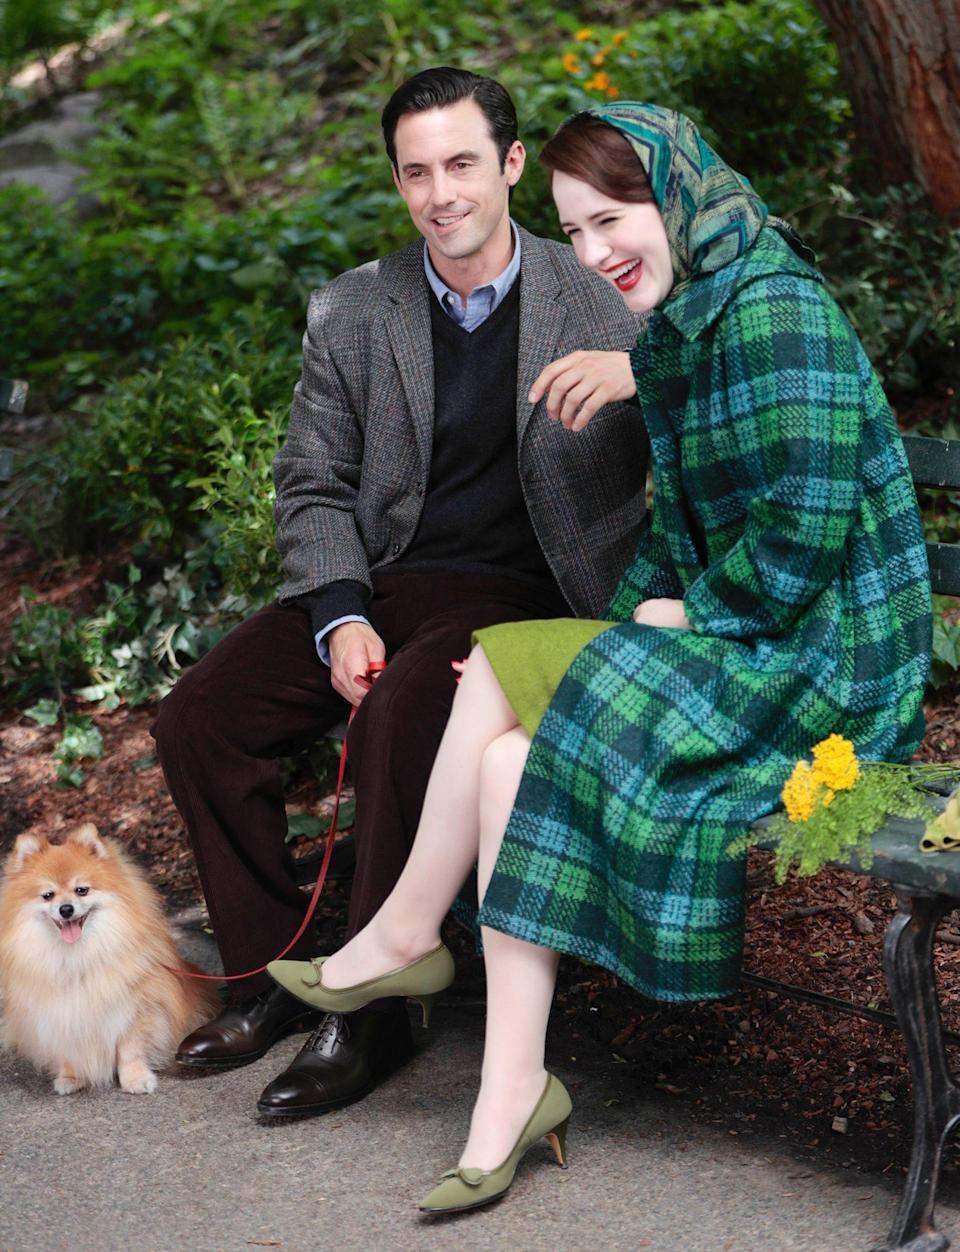 <p>Milo Ventimiglia is spotted filming a scene on a park bench alongside Rachel Brosnahan for <i>The Marvelous Mrs. Maisel </i>on June 10 in N.Y.C. </p>